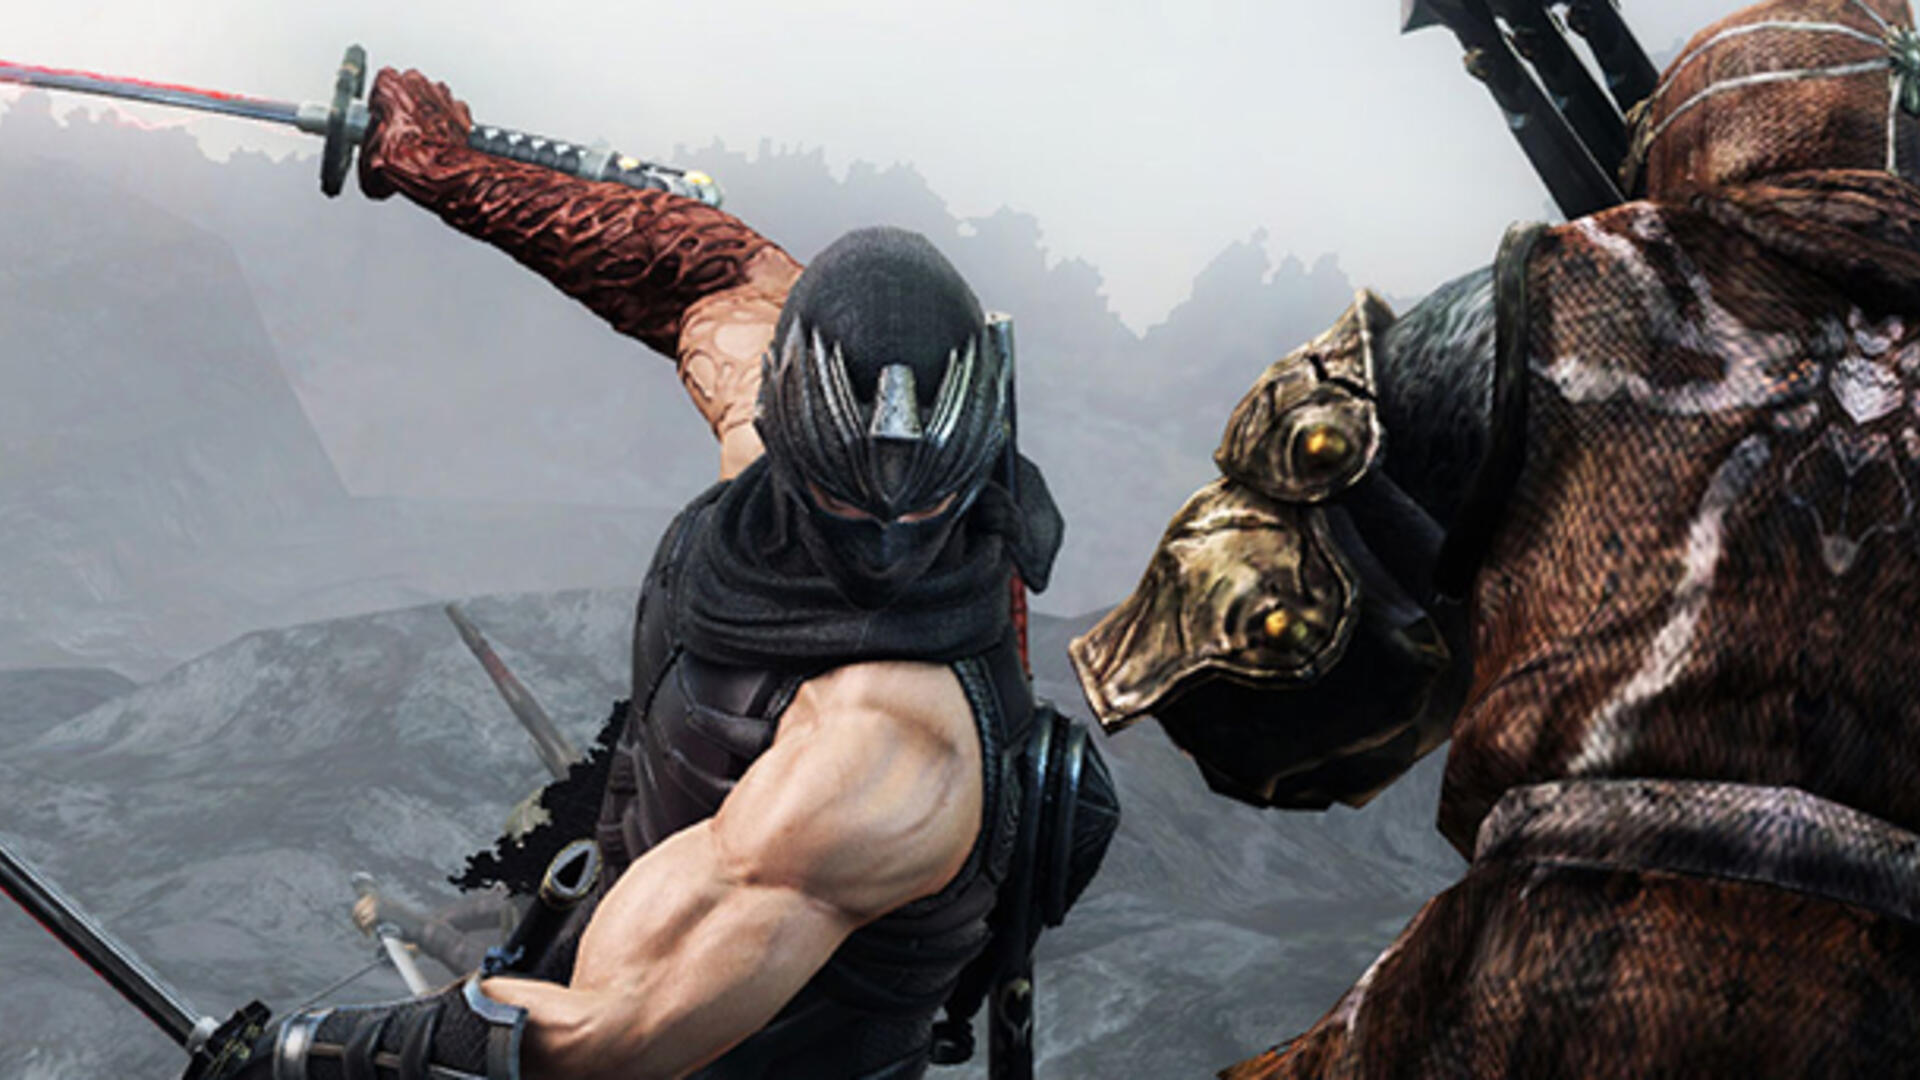 Team Ninja Ninja Gaiden Needs To Be In The Shadows For A While